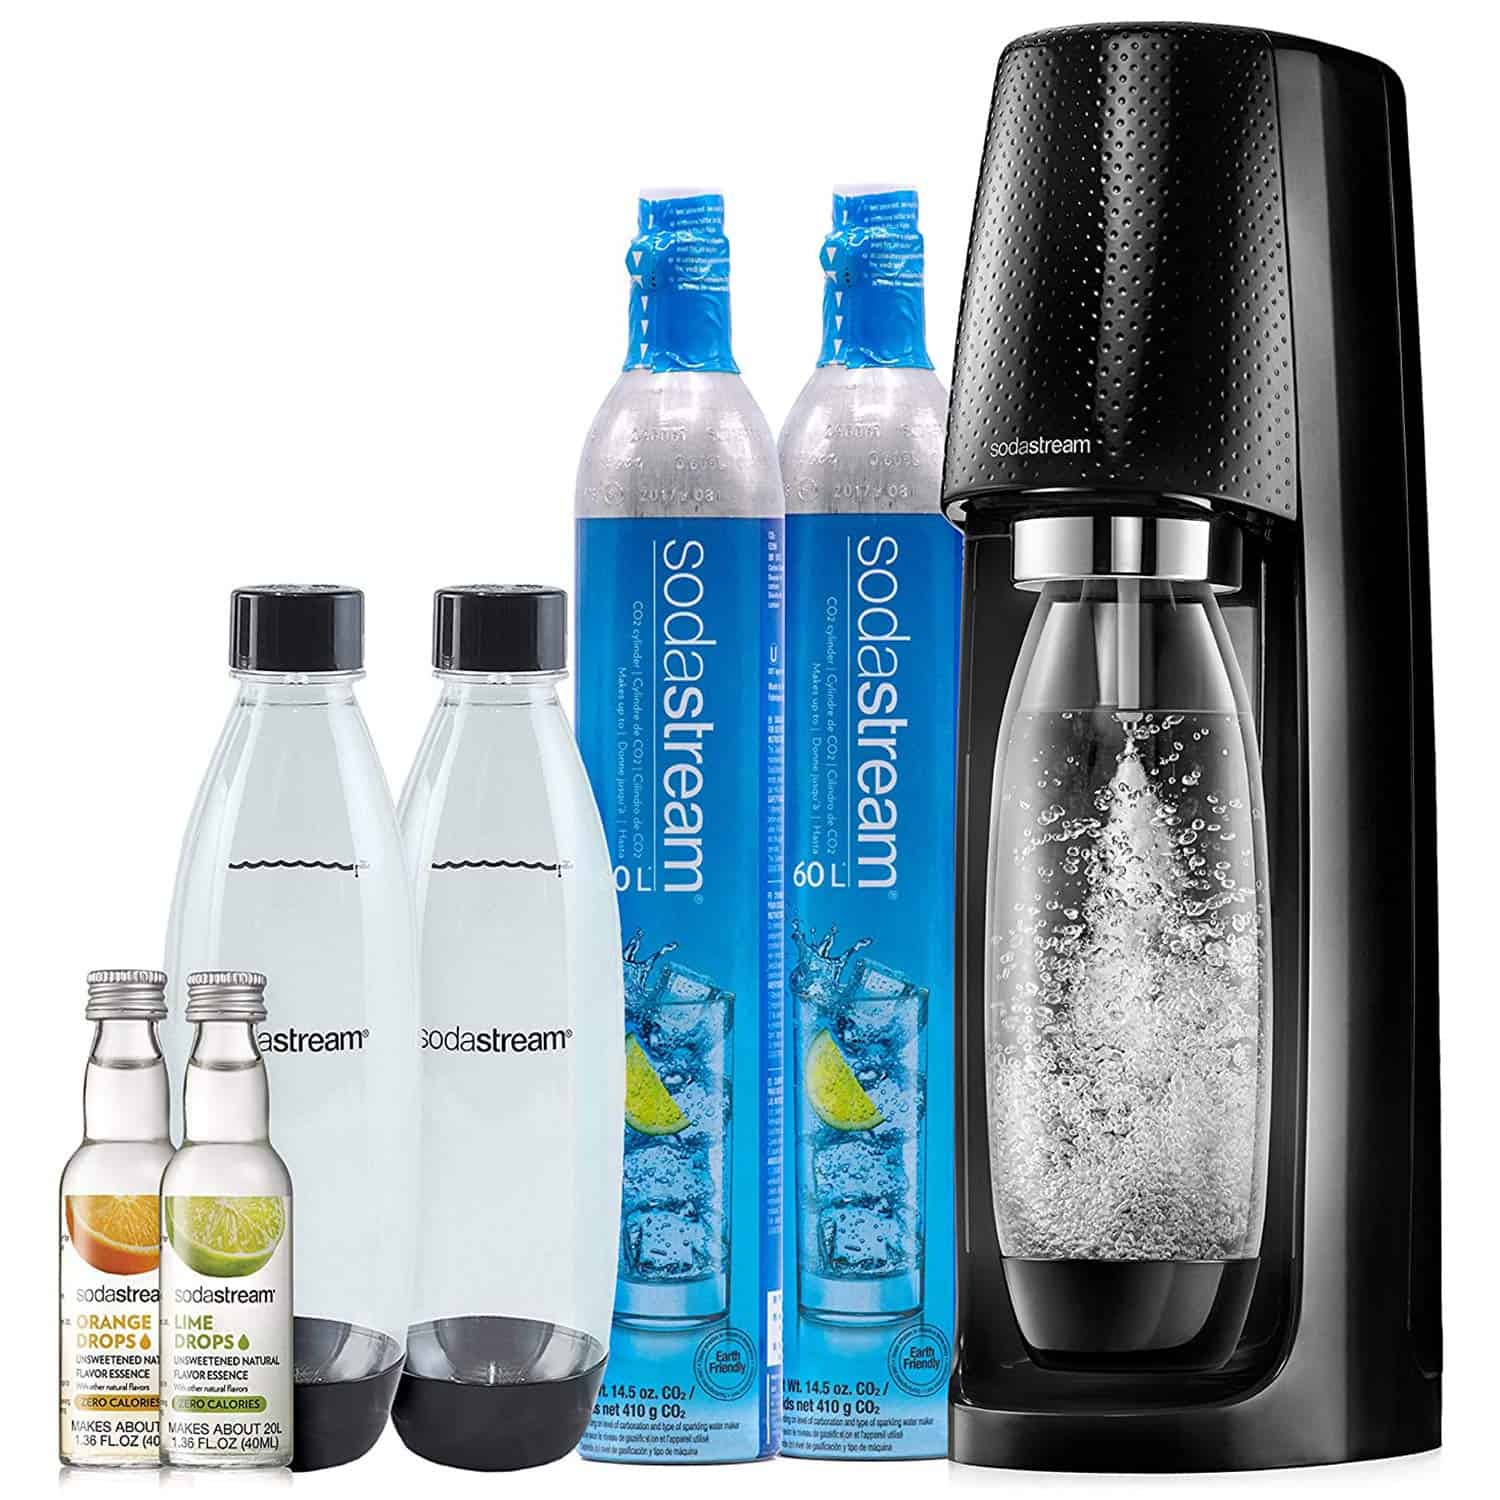 What do you know about Sodastream?